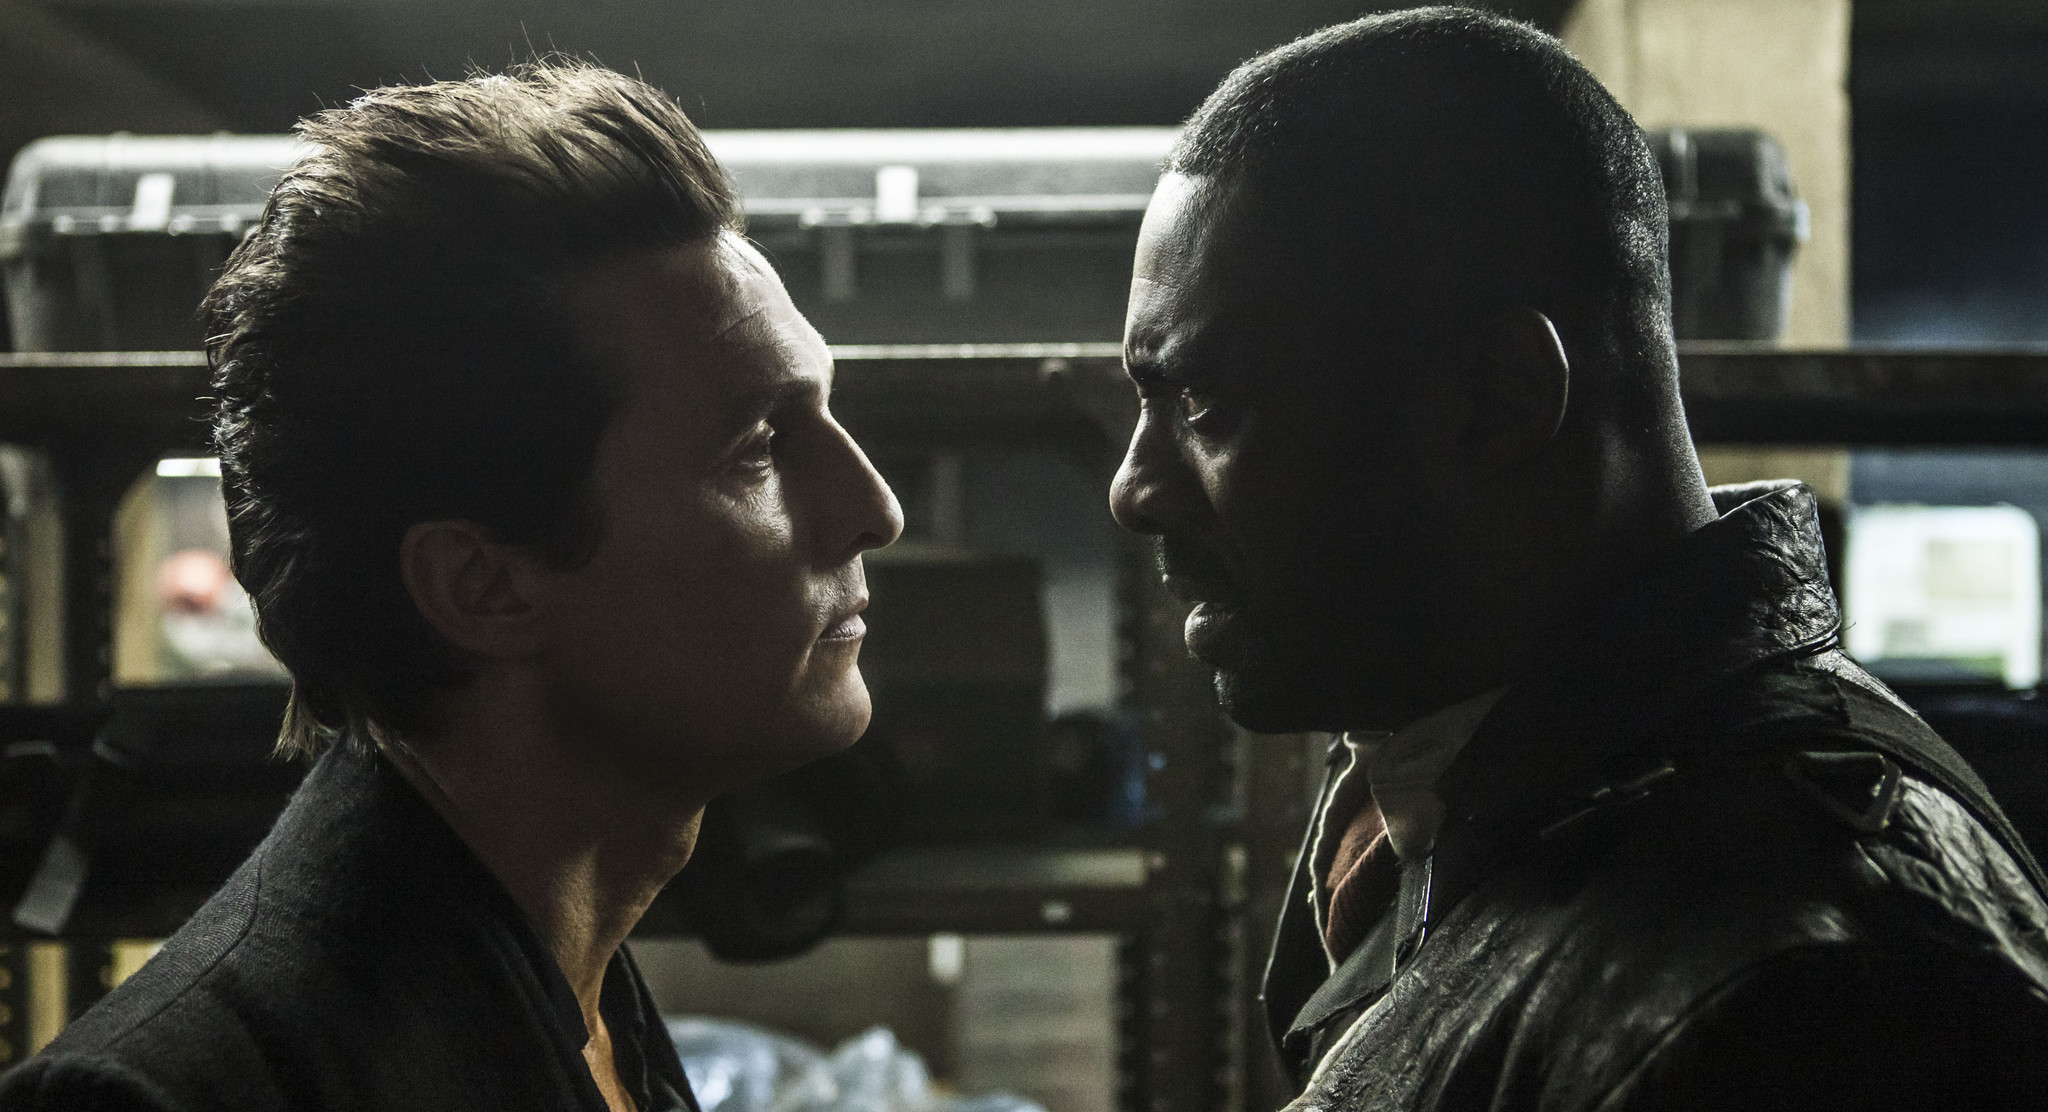 """Matthew McConaughey as Walter, left, and Idris Elba as Roland in """"The Dark Tower."""" (Ilze Kitshoff / Columbia Pictures)"""